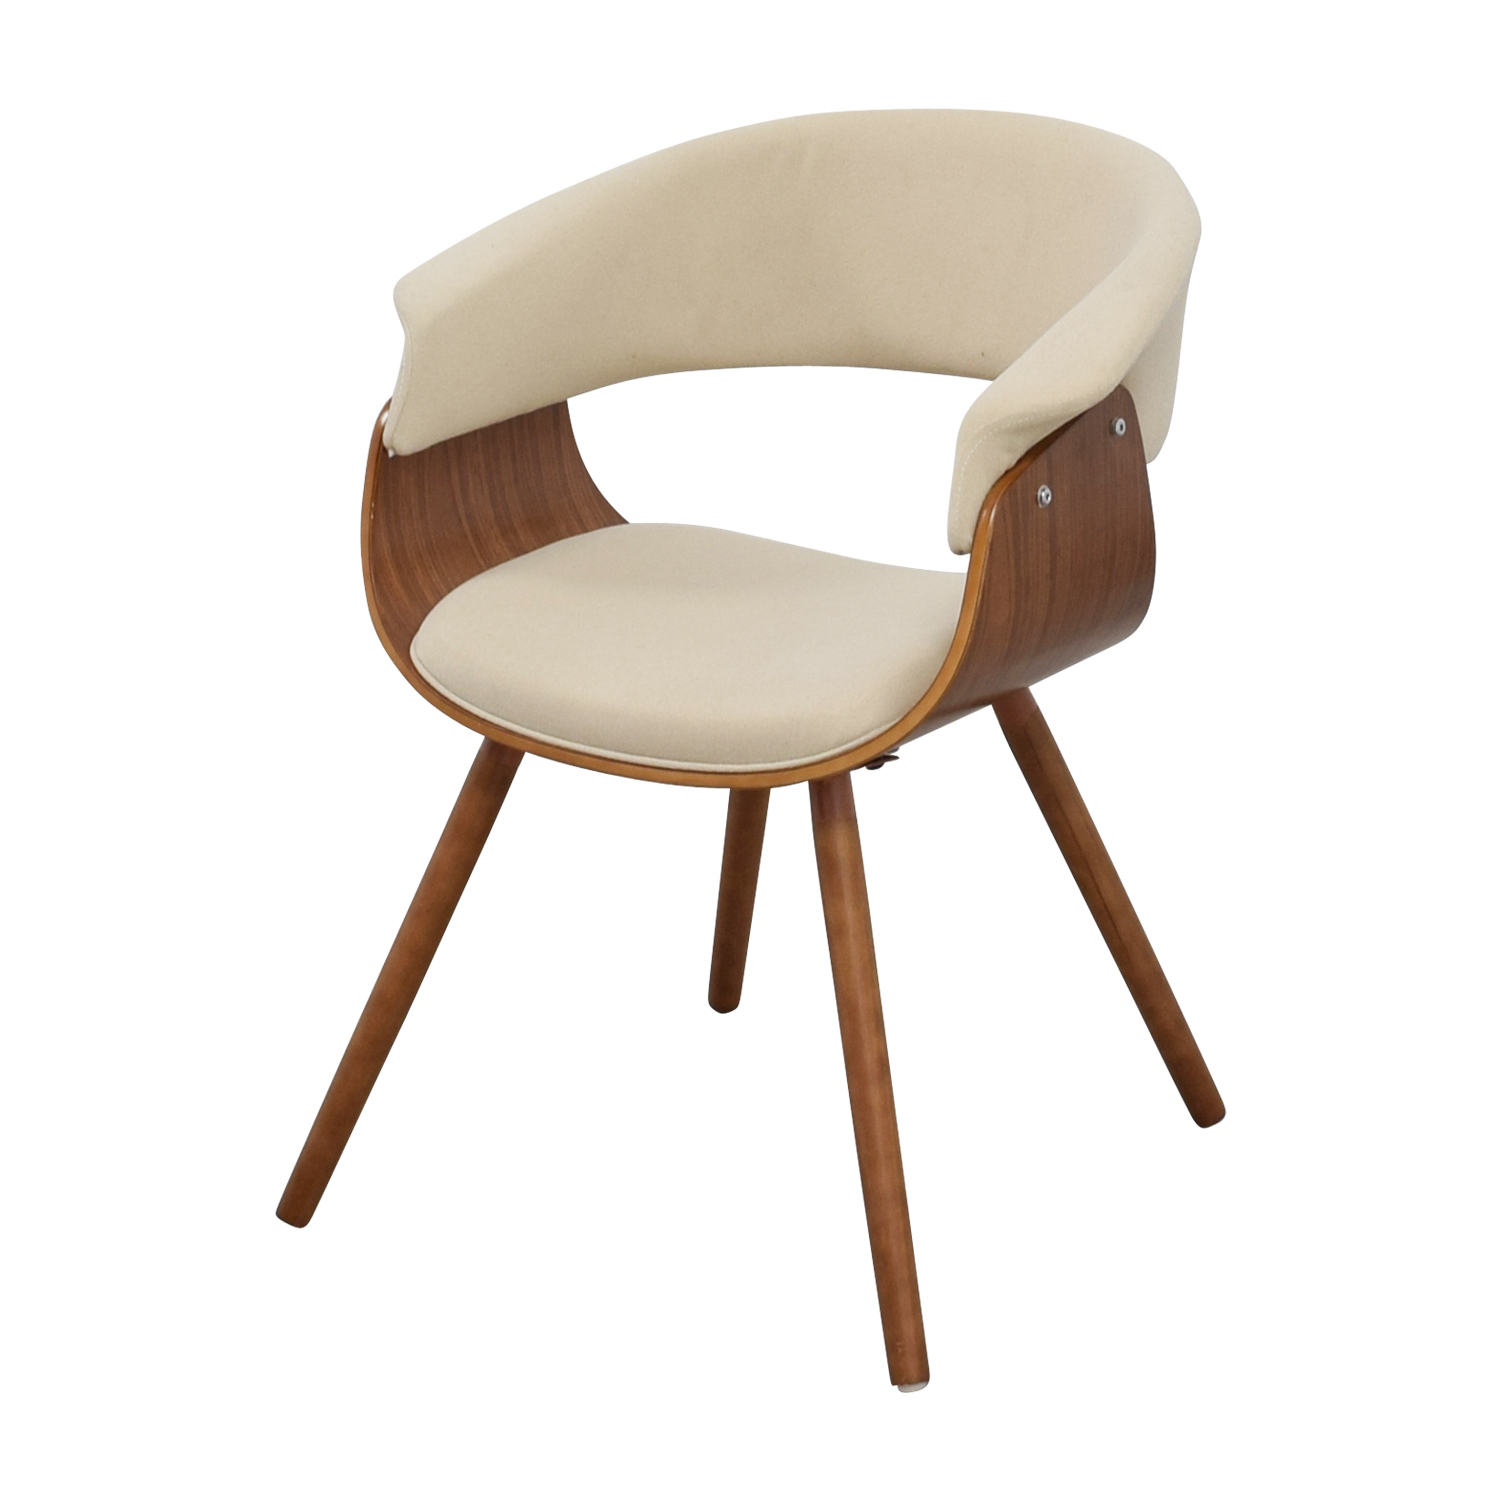 buy Joss & Main Frederick Off White and Wood Accent Arm Chair Joss & Main